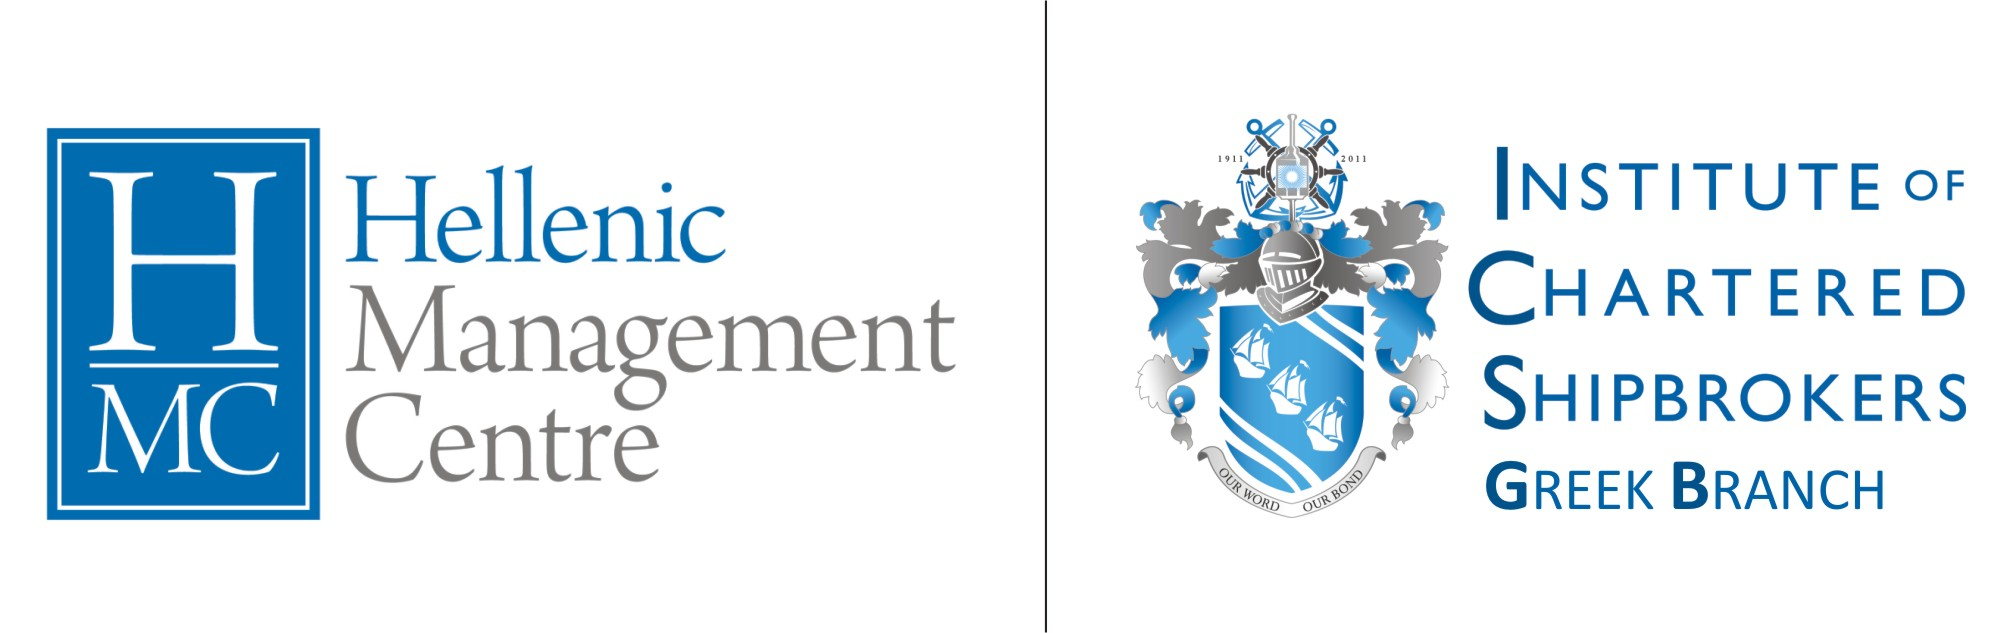 http://www.investinthefuture.gr/files/data/blog/HMC_ICS logo new_ (2).jpg